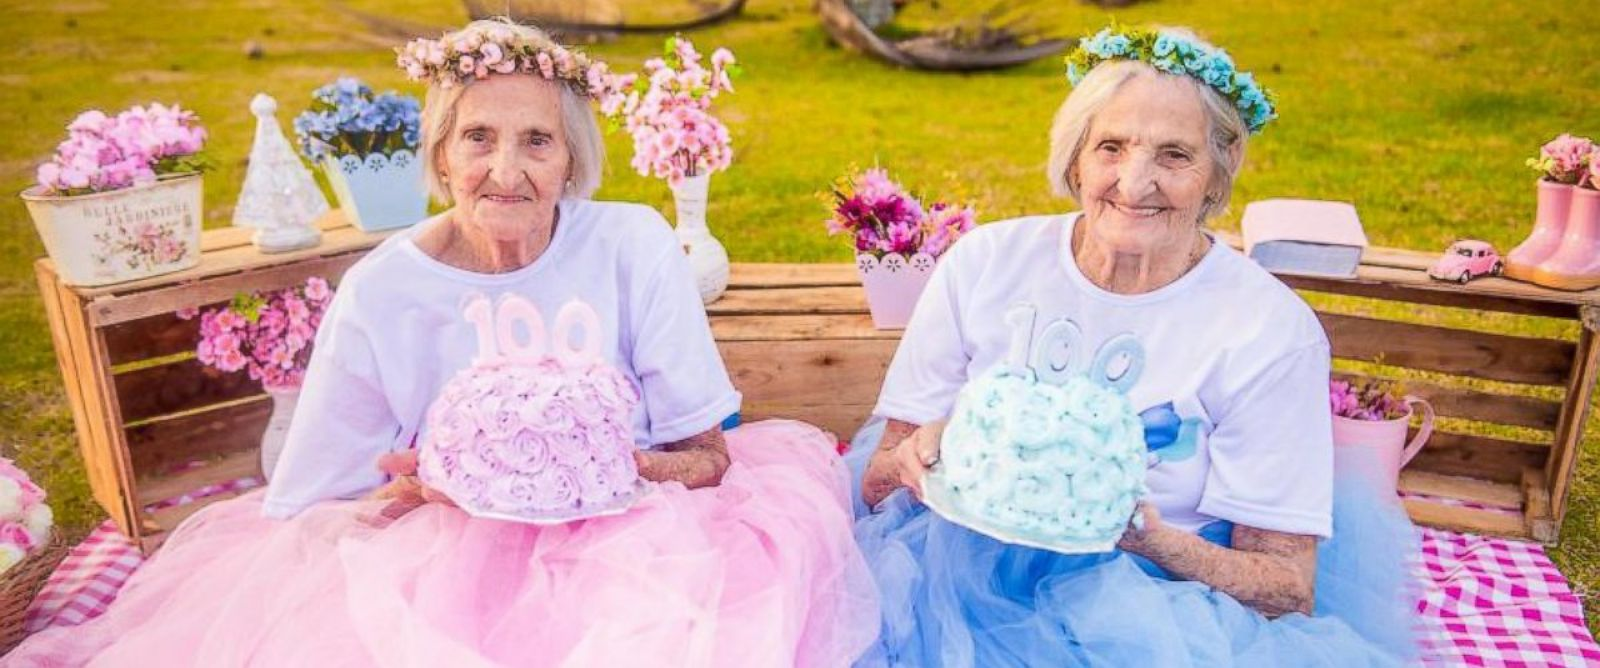 twins celebrate whimsical photoshoot